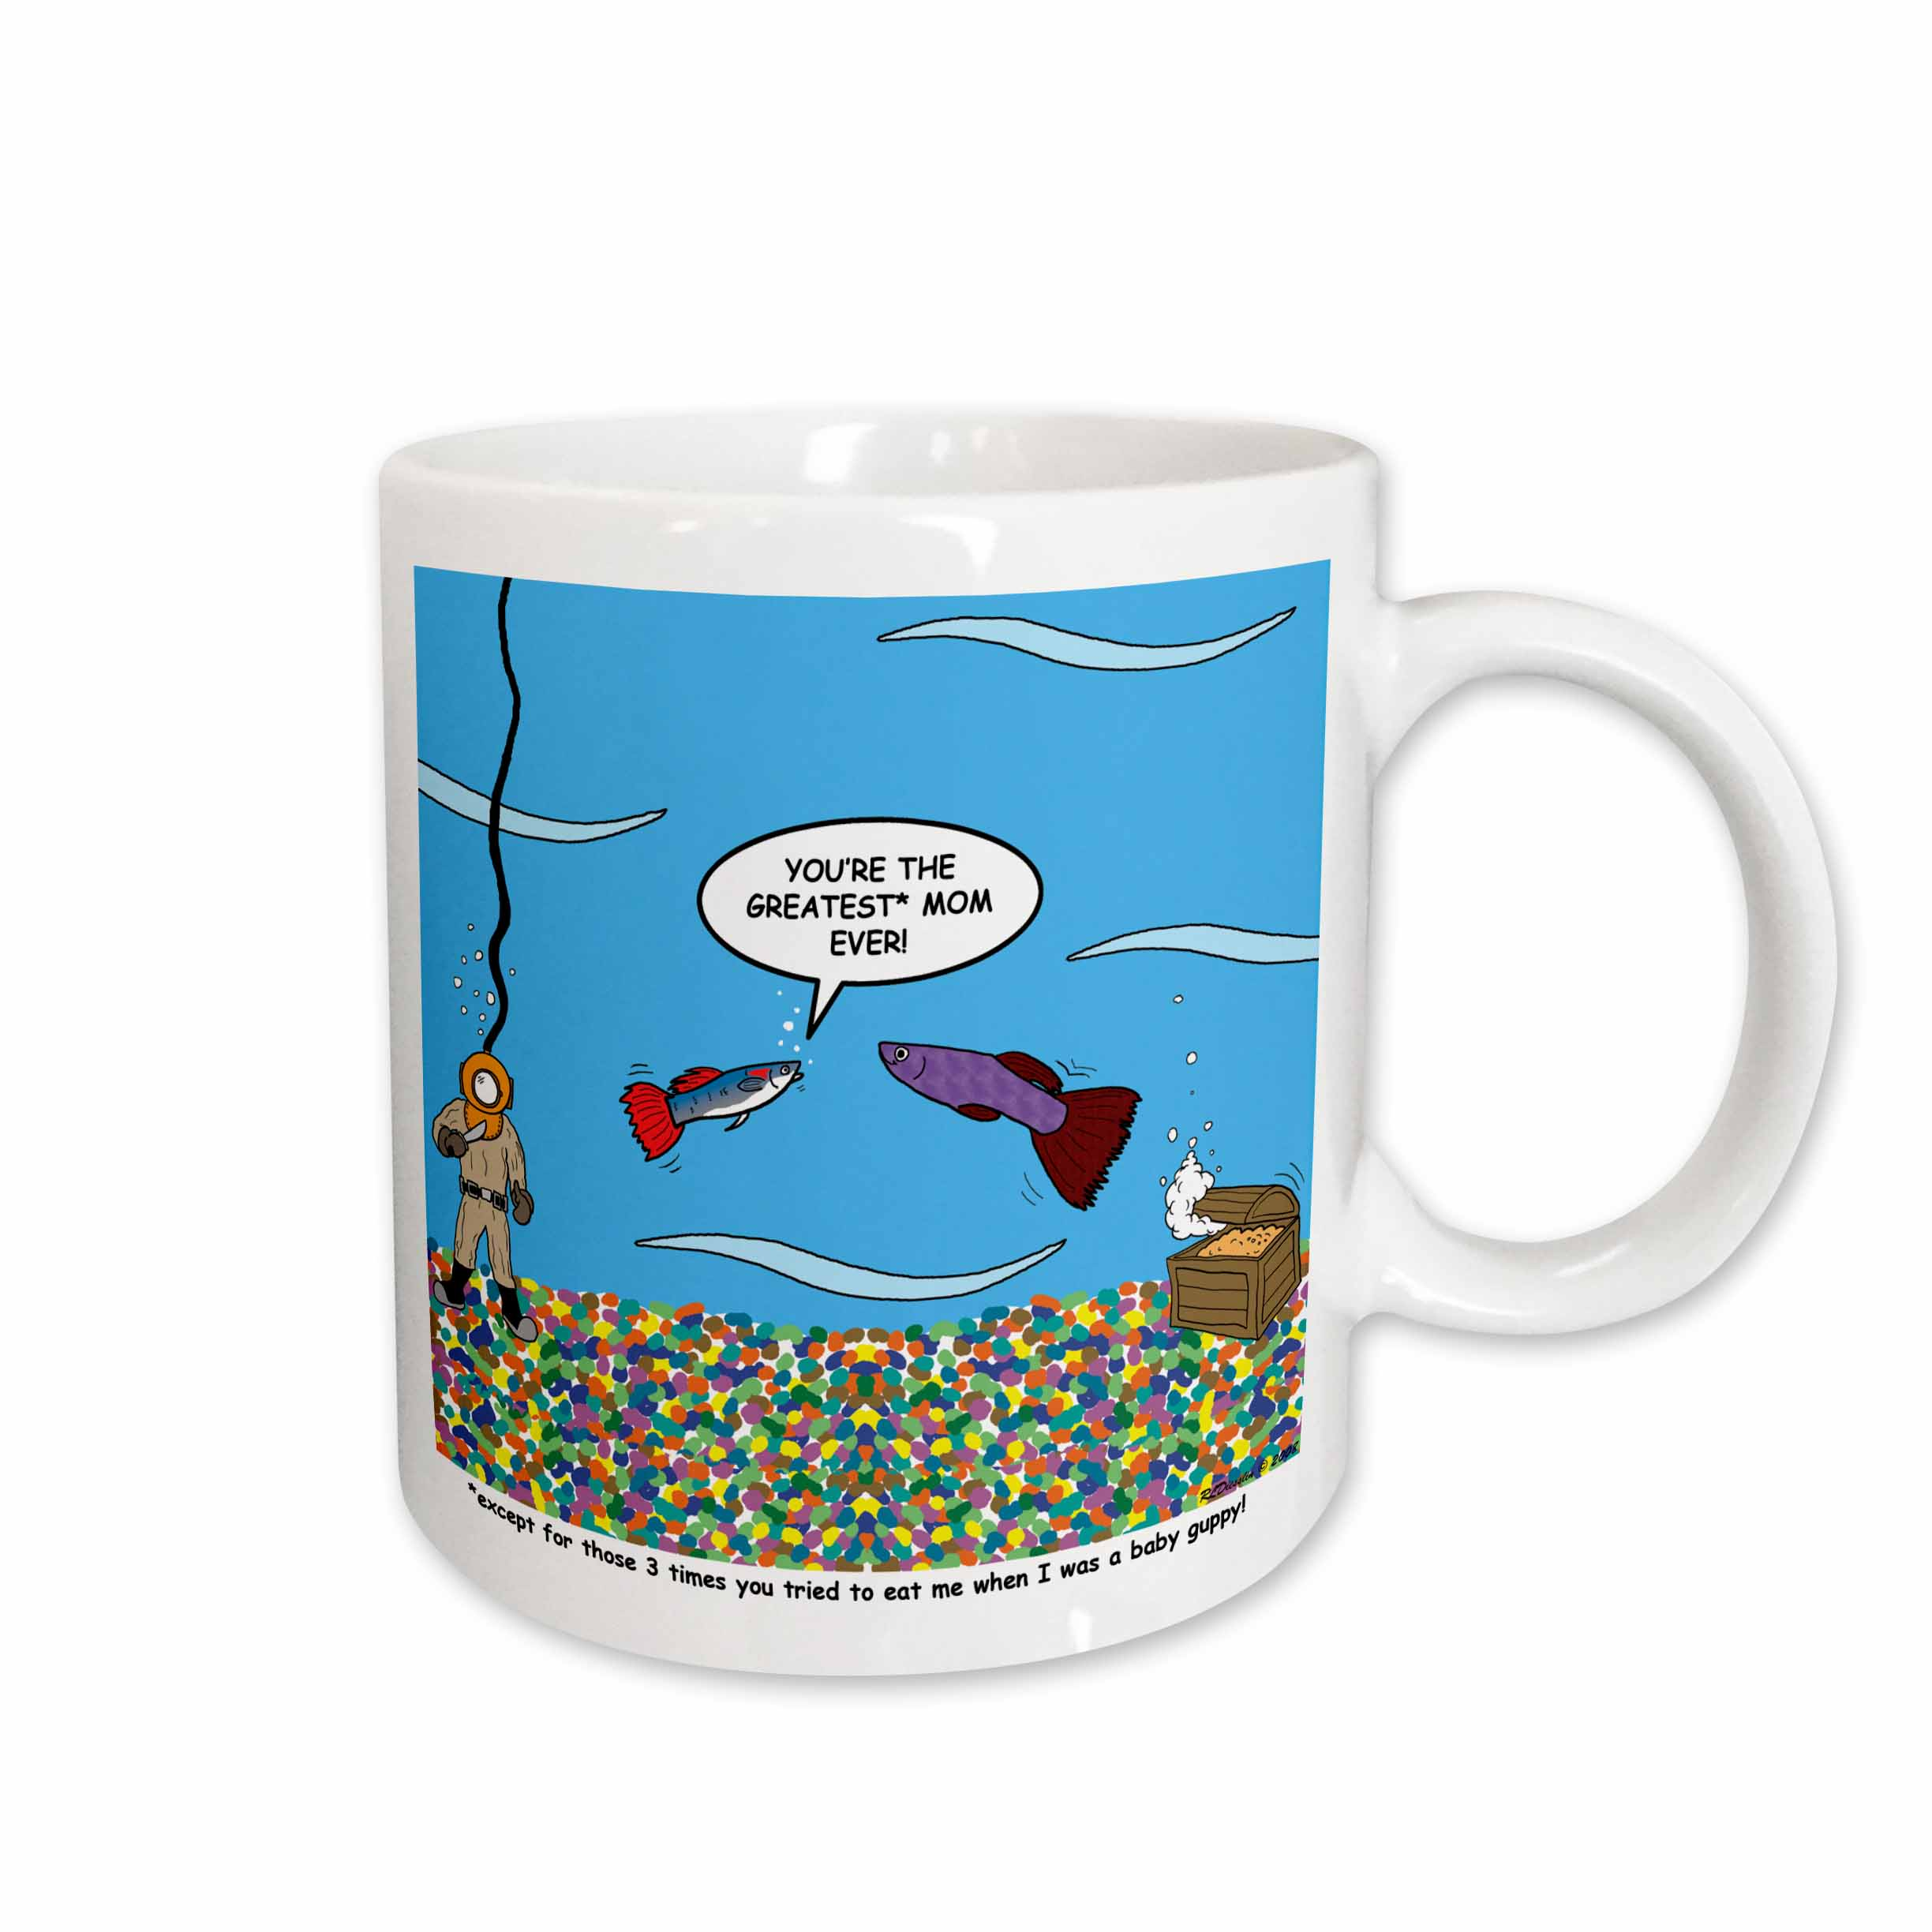 3dRose - Rich Diesslins Funny General Cartoons - Mothers Day guppy love - Mugs at Sears.com